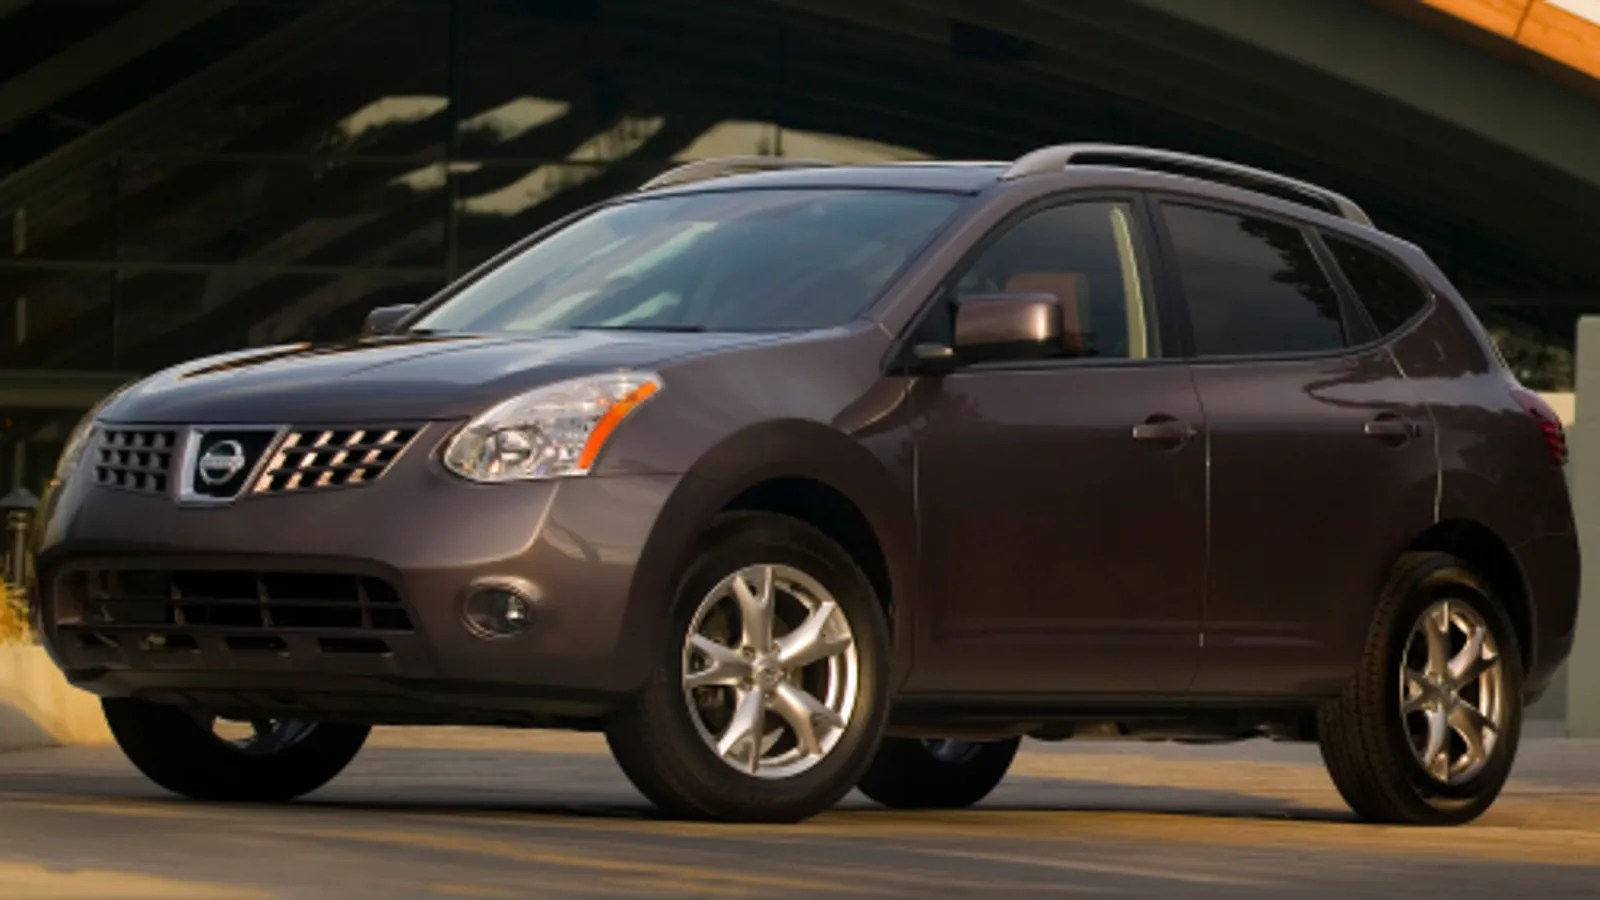 Cuv Car From Super Car To Cuv How The Nissan Rogue Got Its Name